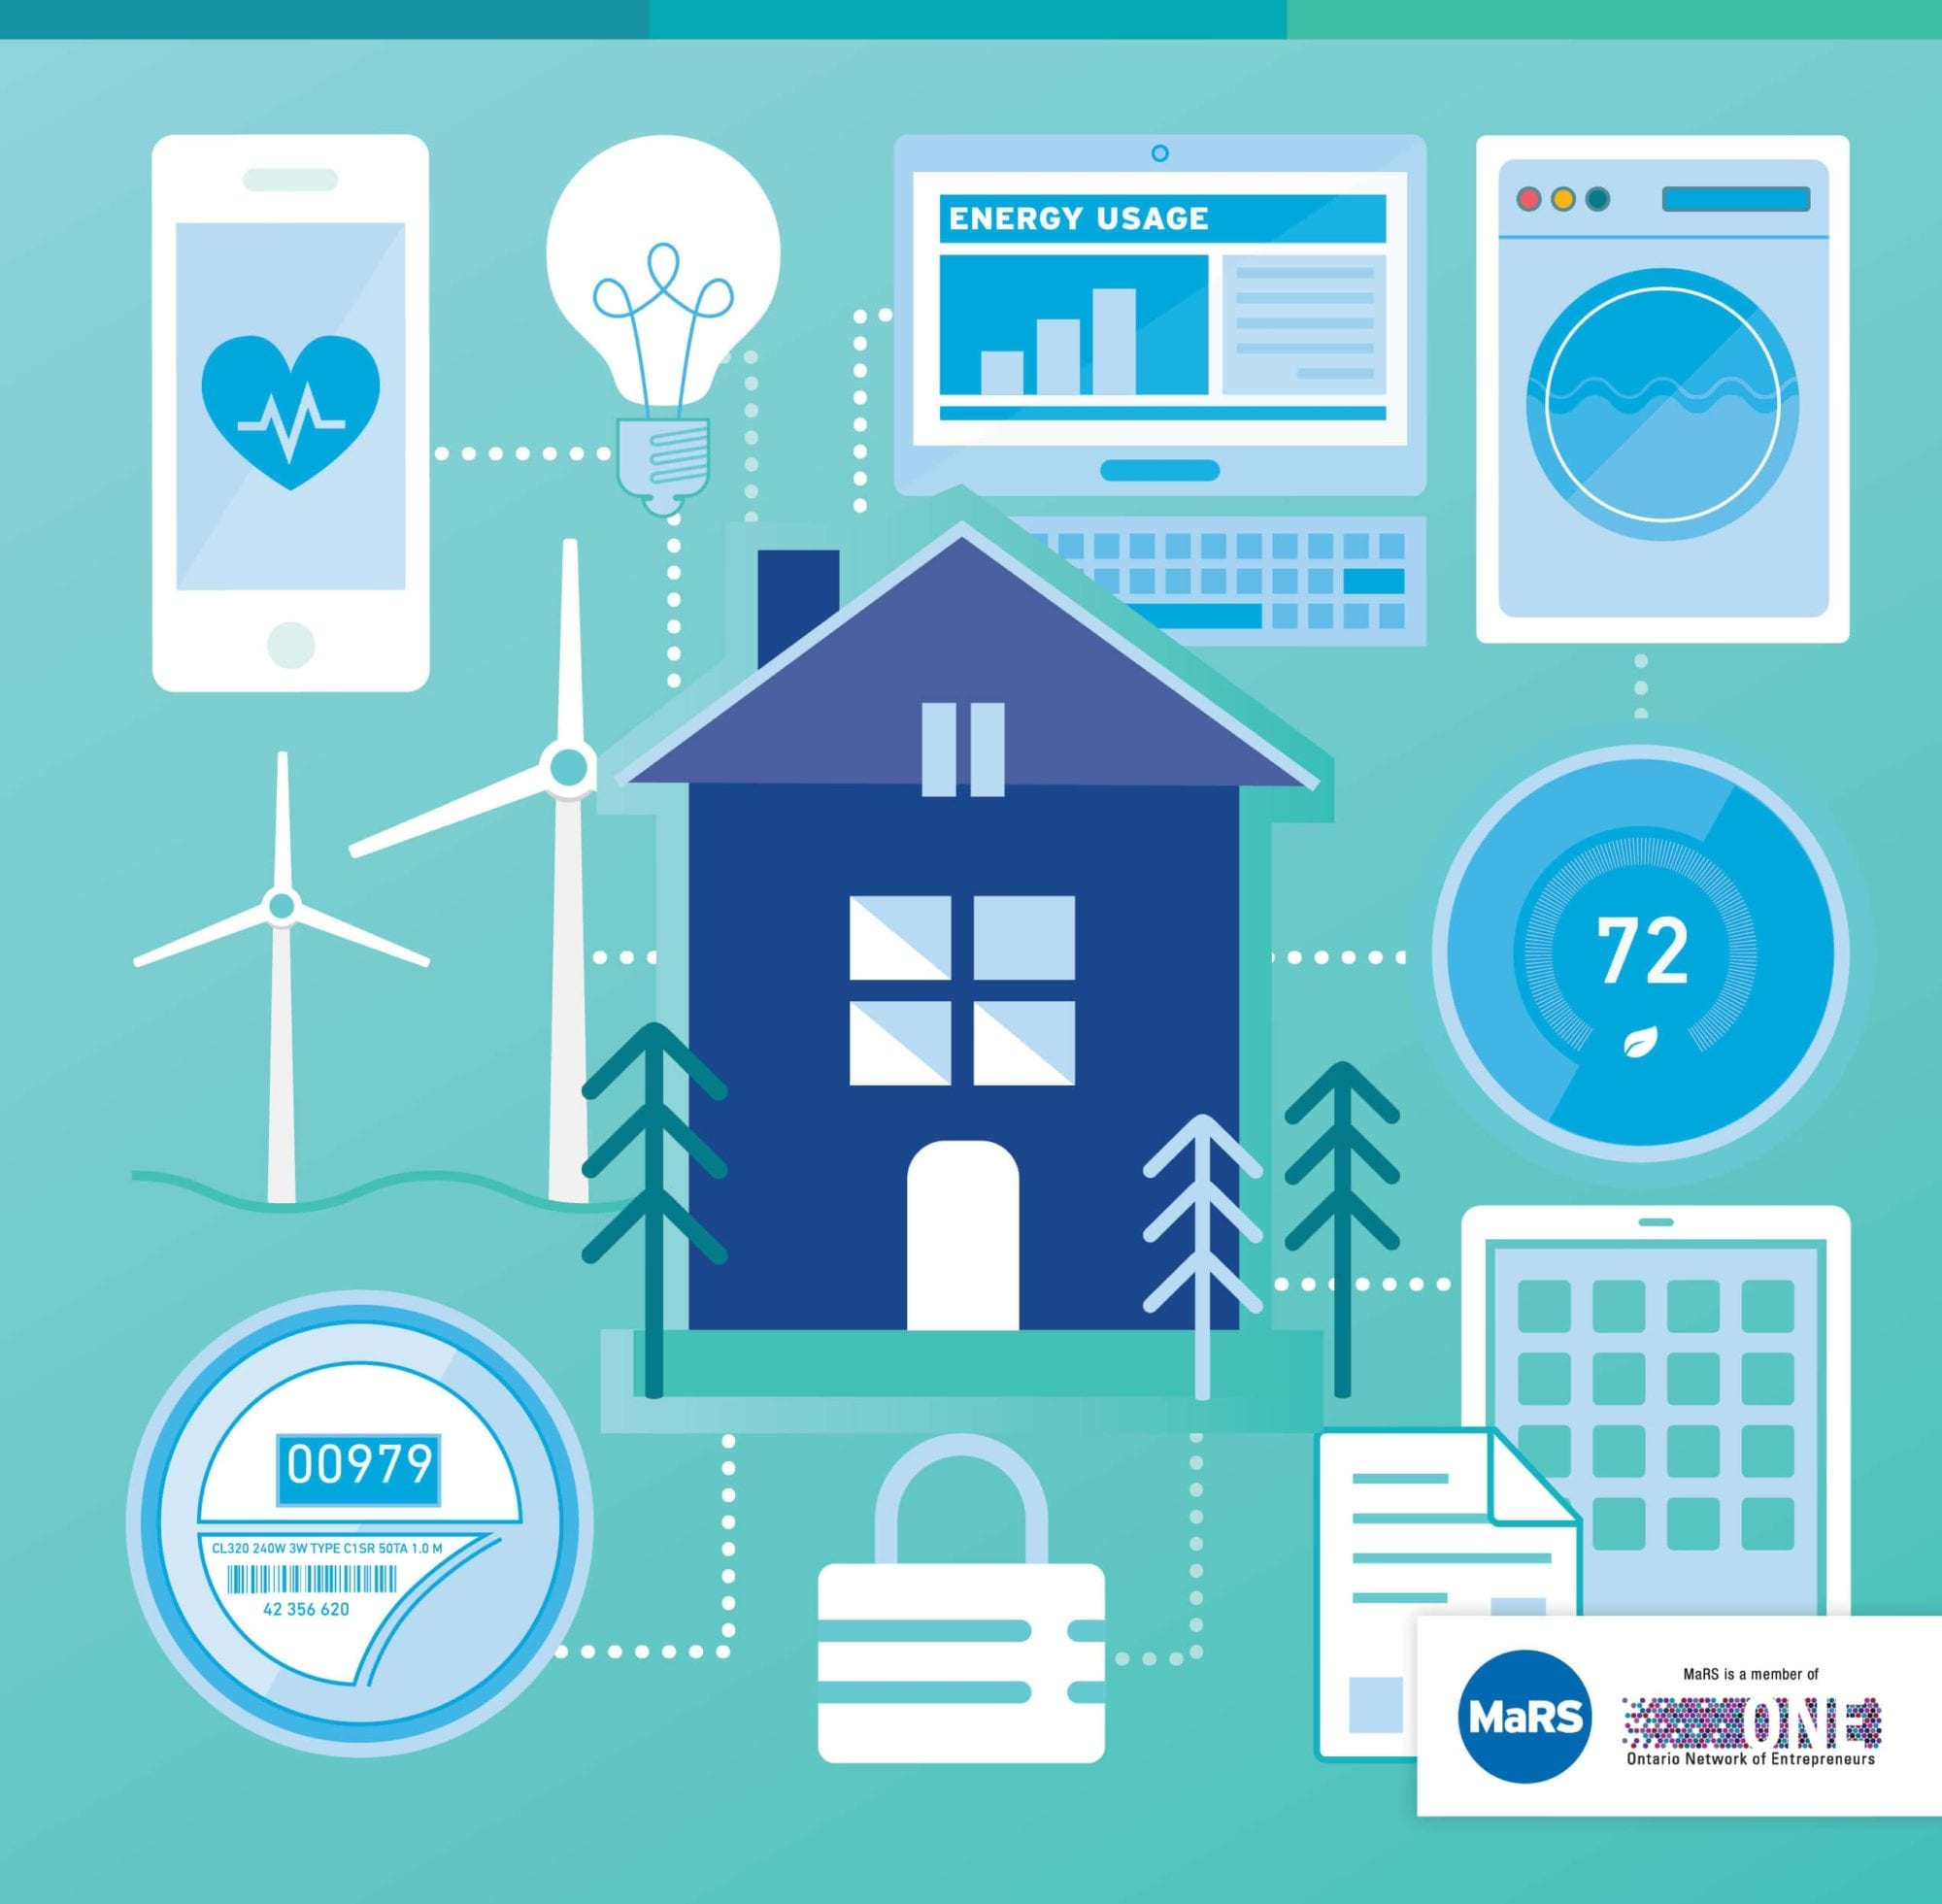 The Connected Home: Smart automation enables home energy management